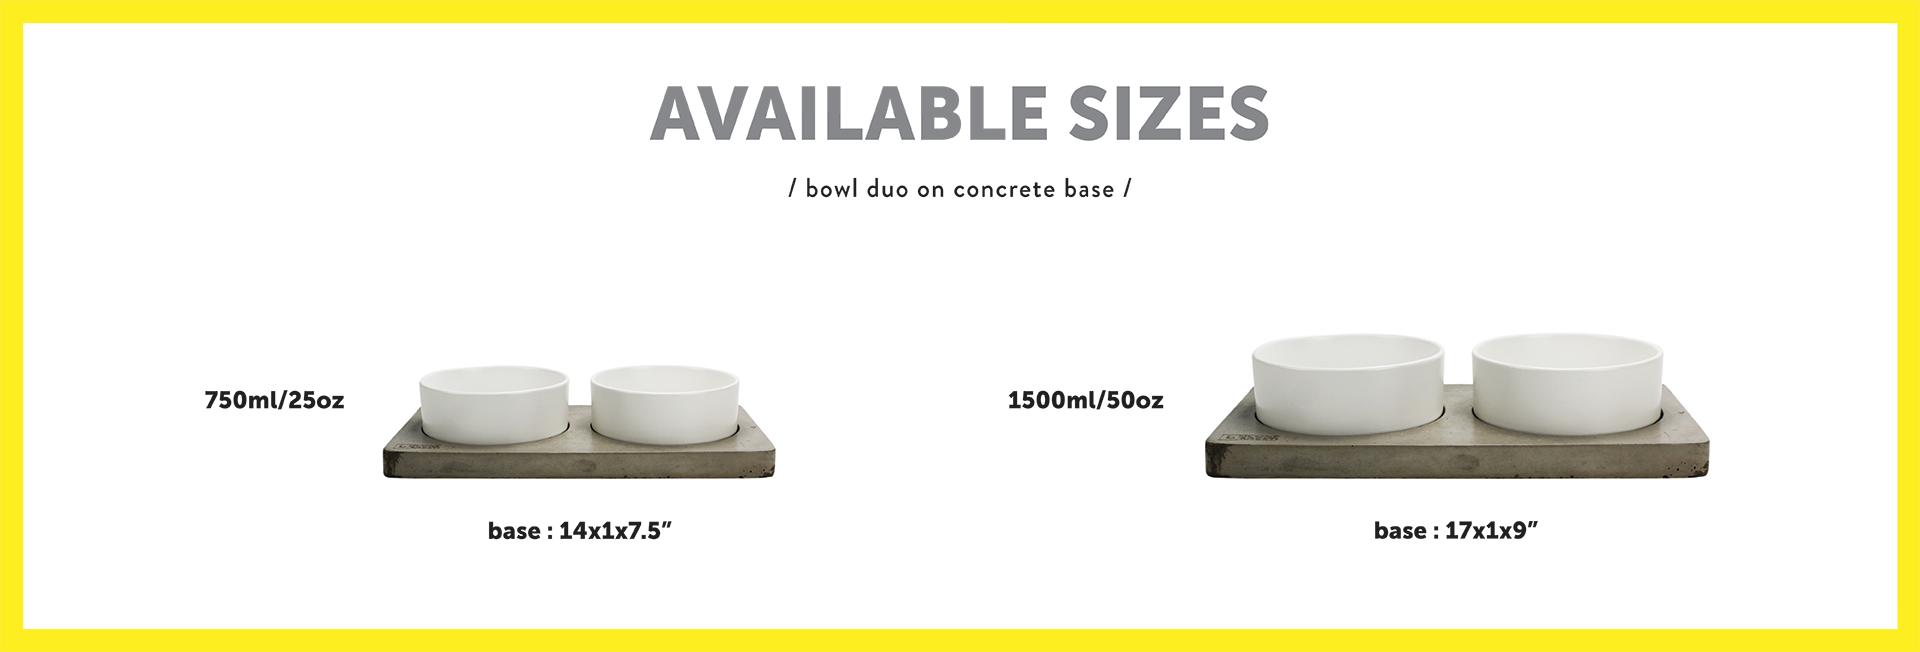 dimensions-bowl-duo-concrete-base-for-dogs-english